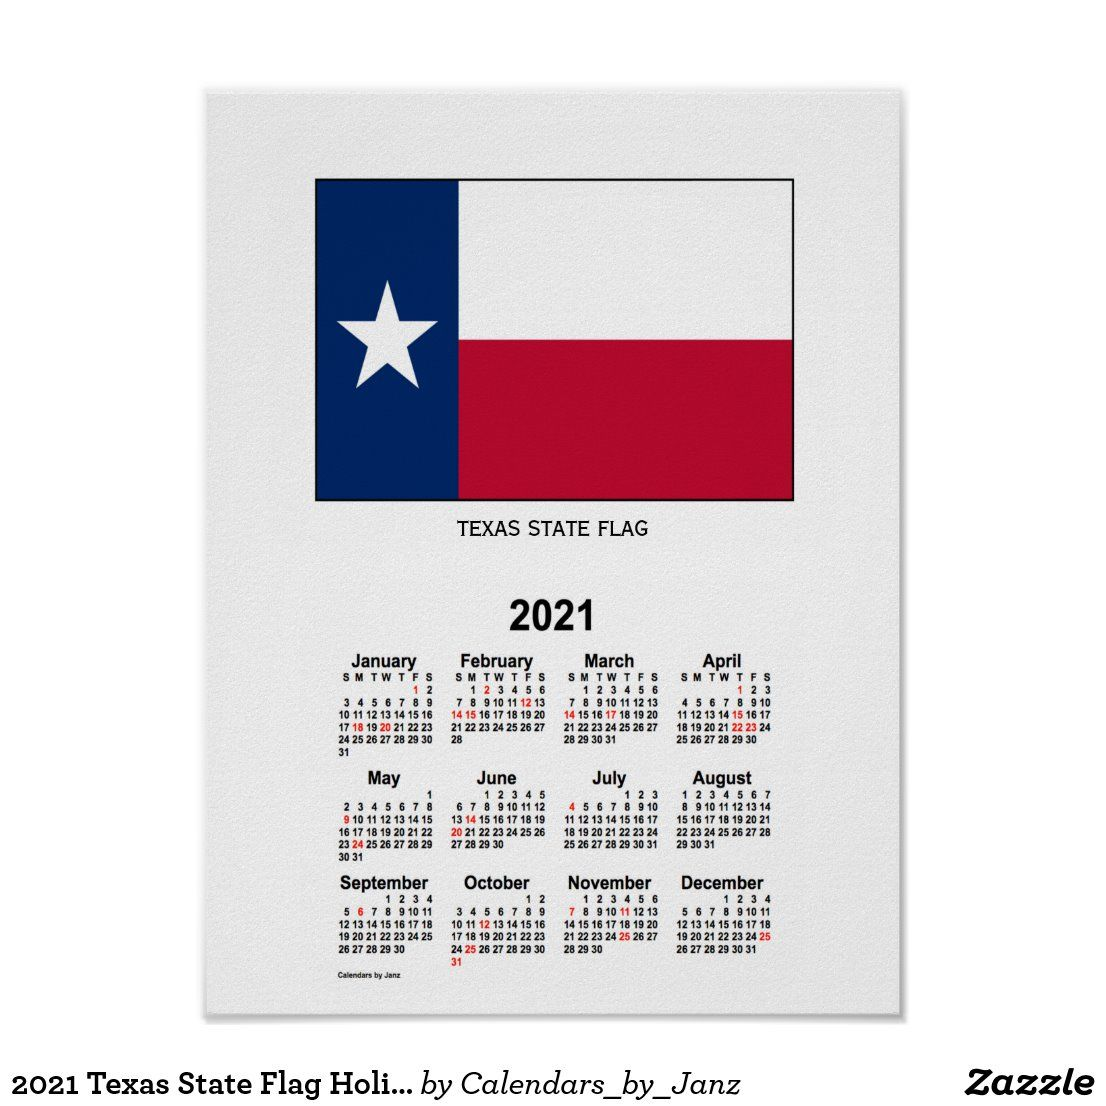 2021 Texas State Flag Holiday Calendar By Janz Poster Zazzle Com In 2020 Texas State Flag Holiday Calendar State Flags